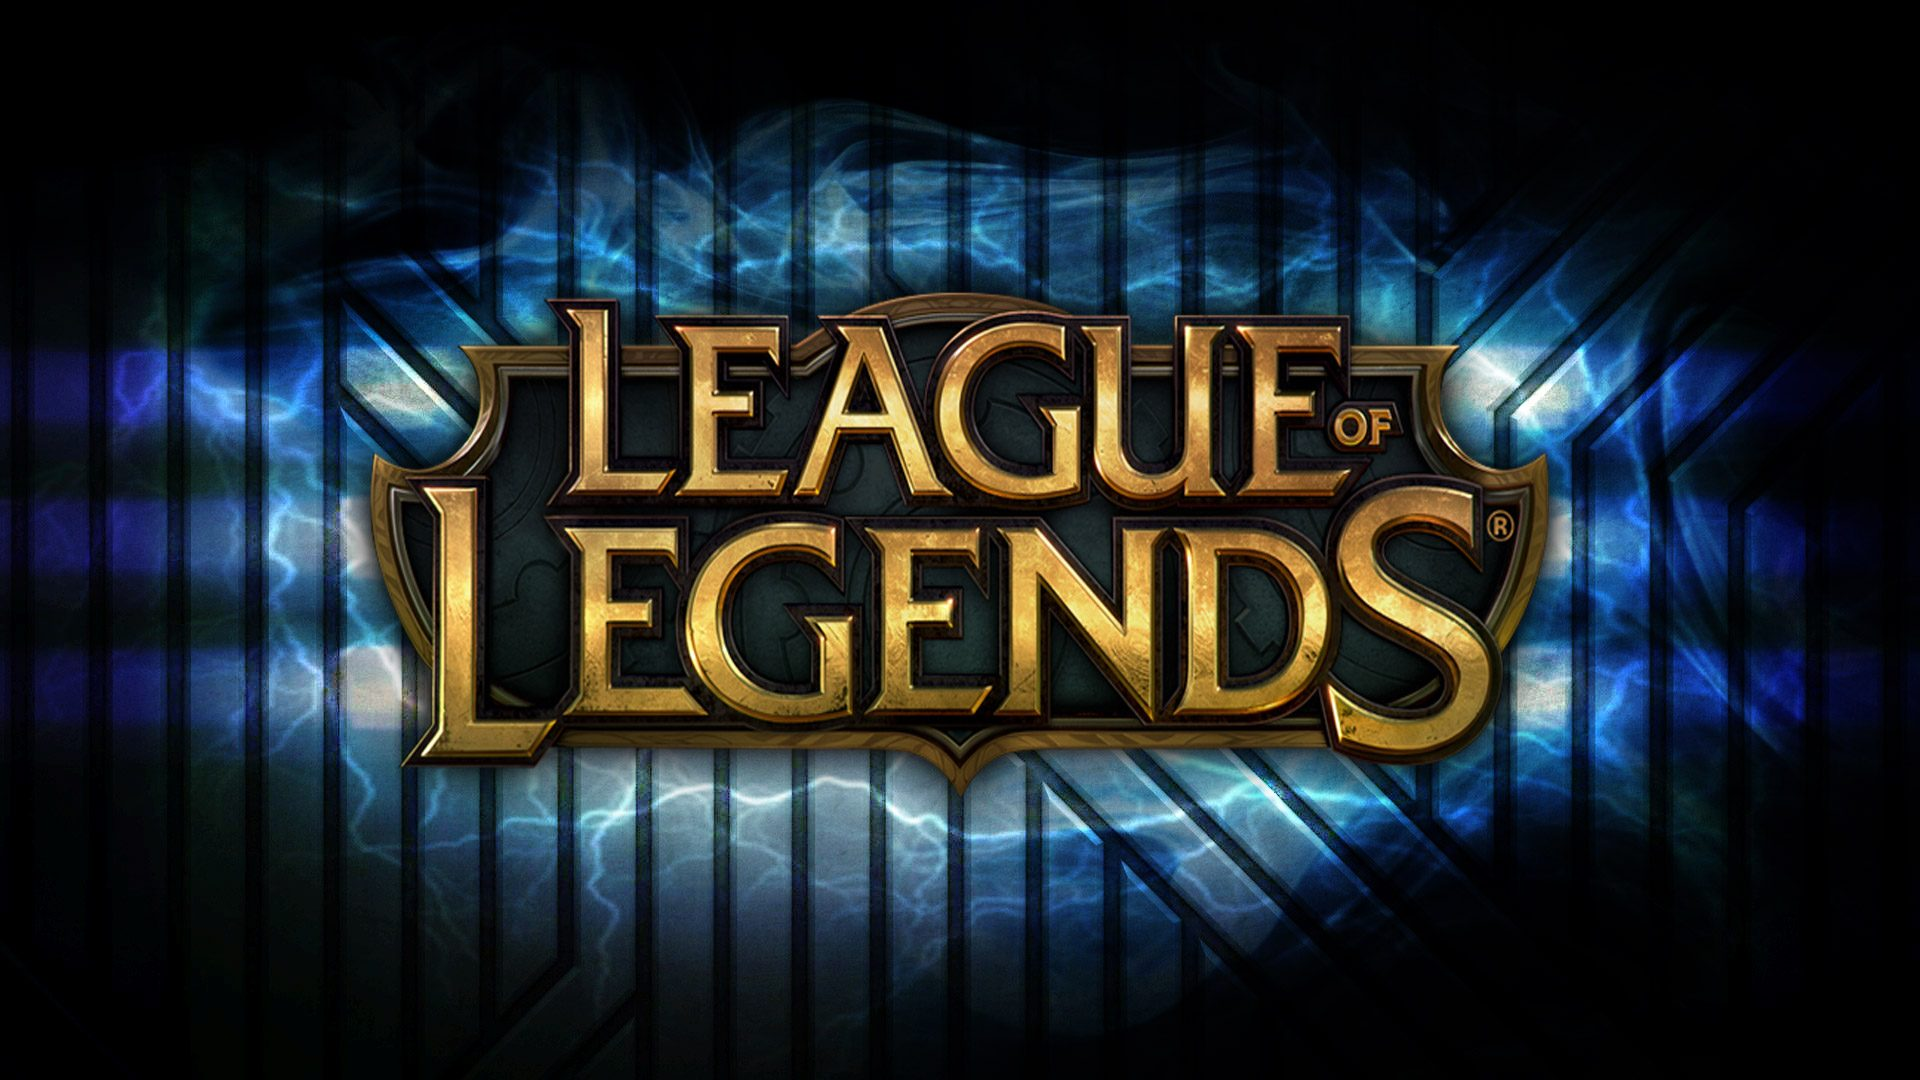 league of legends pro road fined by riot games for unsportsmanlike